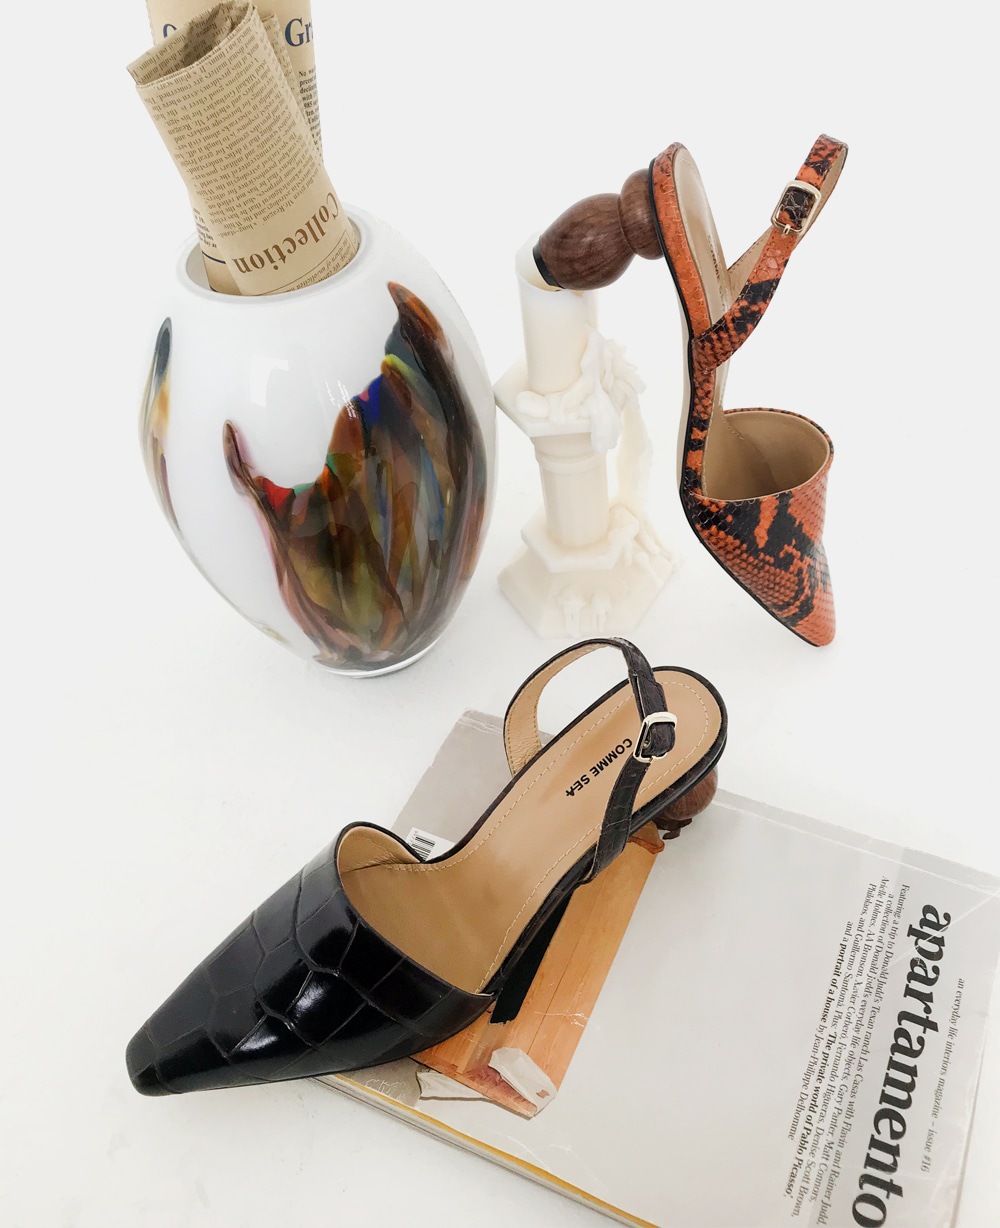 [Limited edition] Objet Slingbacks - Orange Snake / Brown Piton